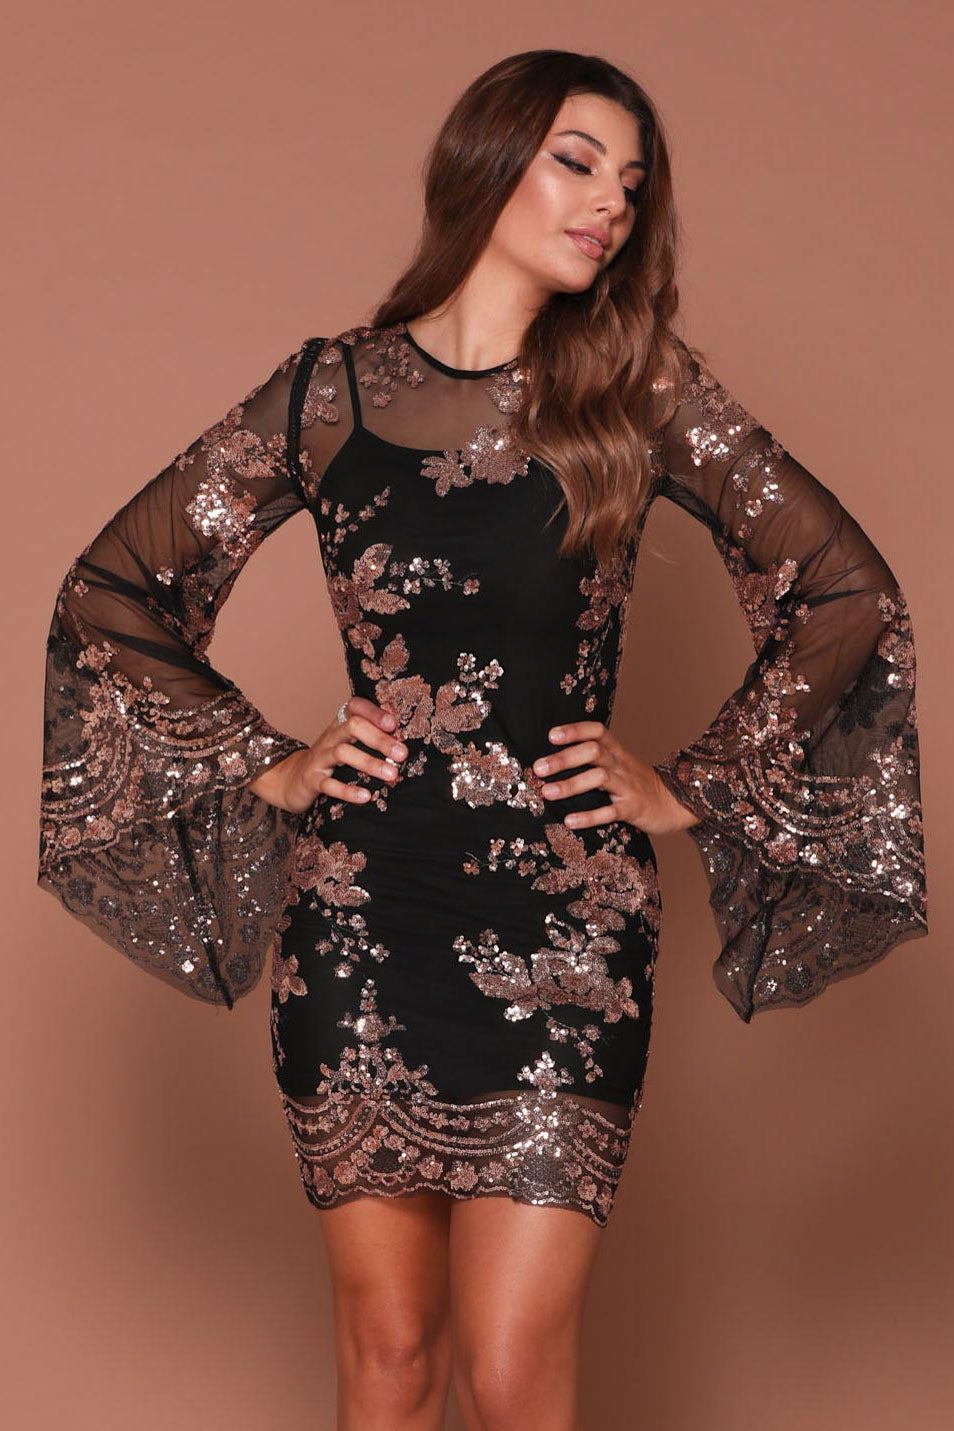 fa82e80ee4f NAZZ COLLECTION FLIRT BLACK   ROSE GOLD BATWING FLORAL SEQUIN SCALLOPED  KAFTAN DRESS